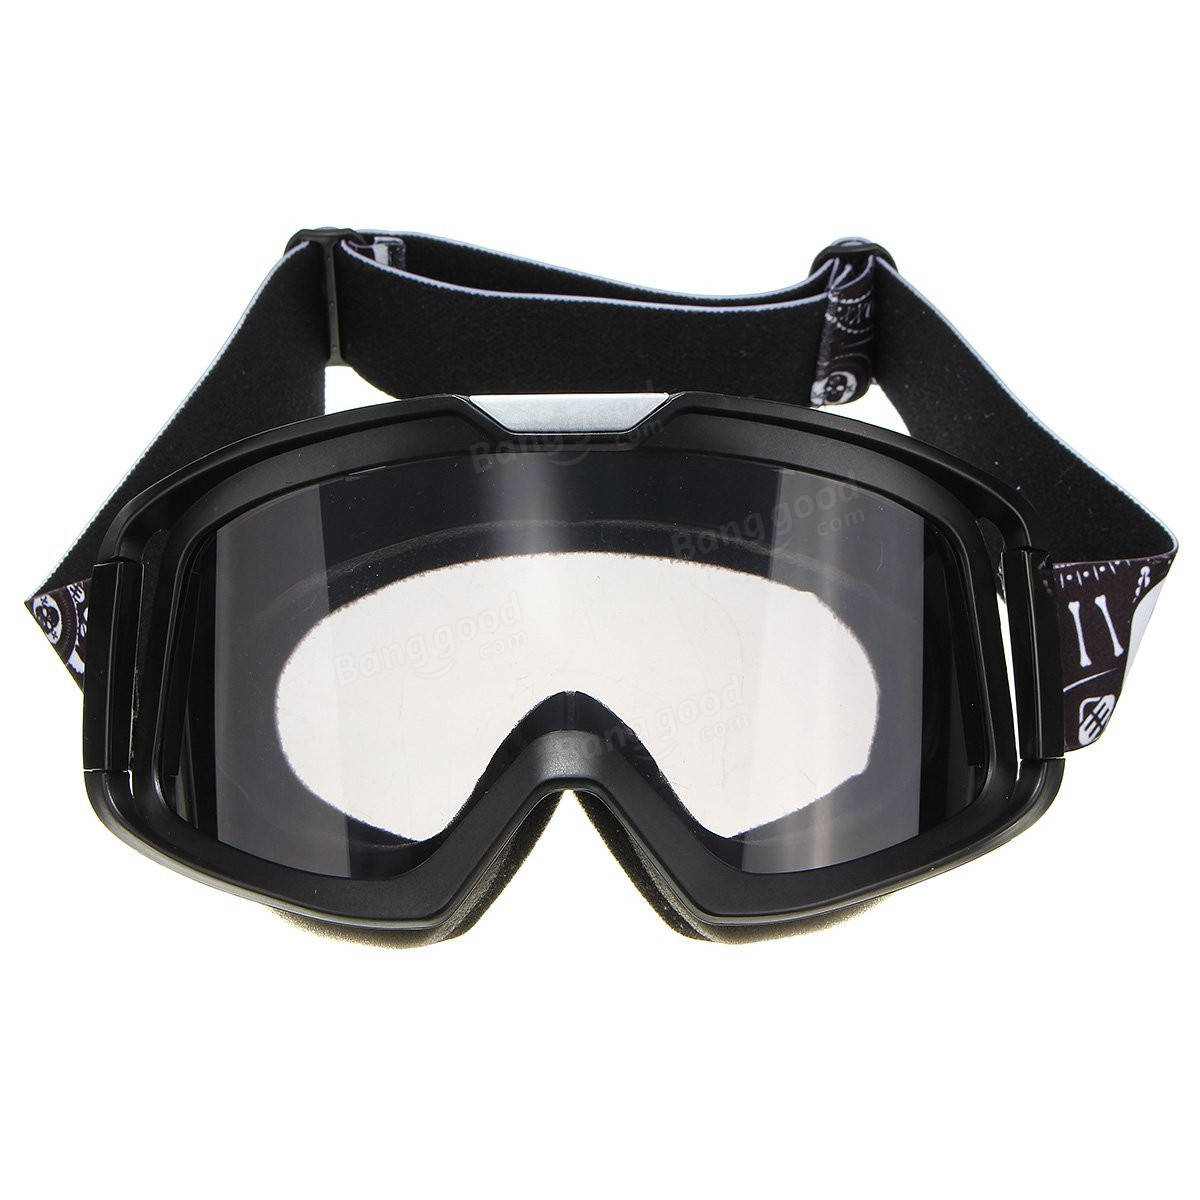 casque de ski moto lunette grise lunettes d tachables masque facial bouche bouche filtre vente. Black Bedroom Furniture Sets. Home Design Ideas